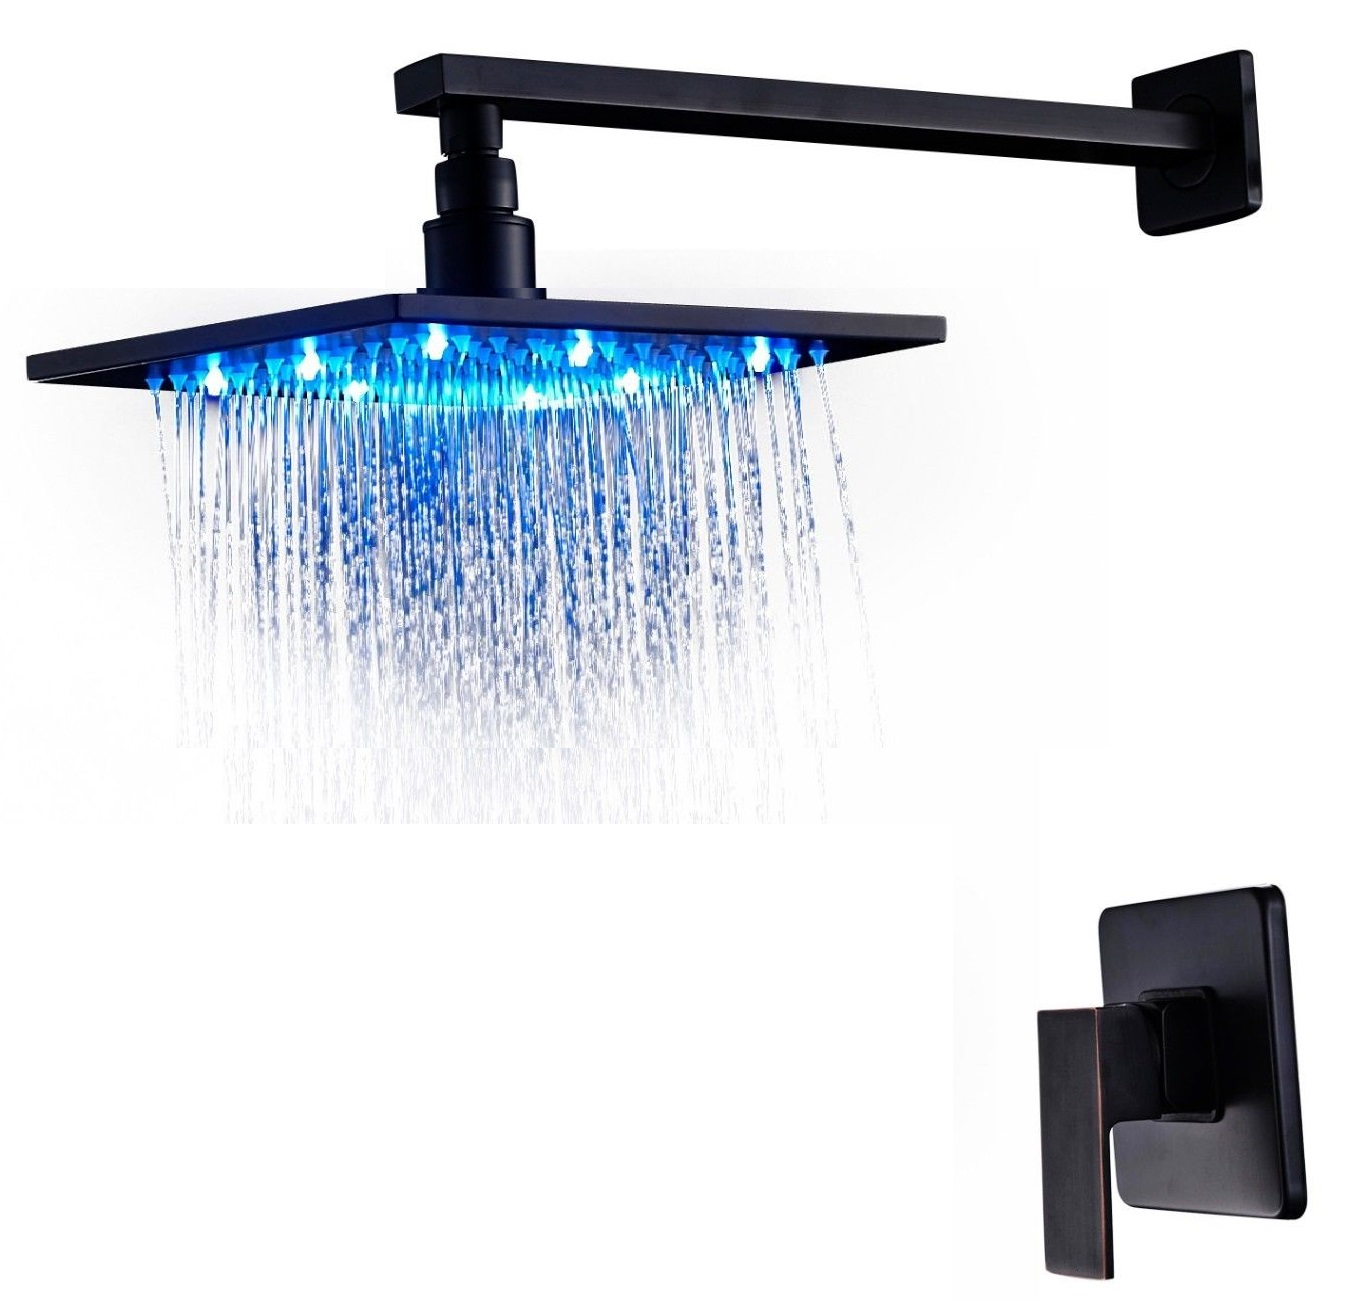 fontana oil rubbed bronze 16 inch bathroom rain shower faucet set with led color. Black Bedroom Furniture Sets. Home Design Ideas